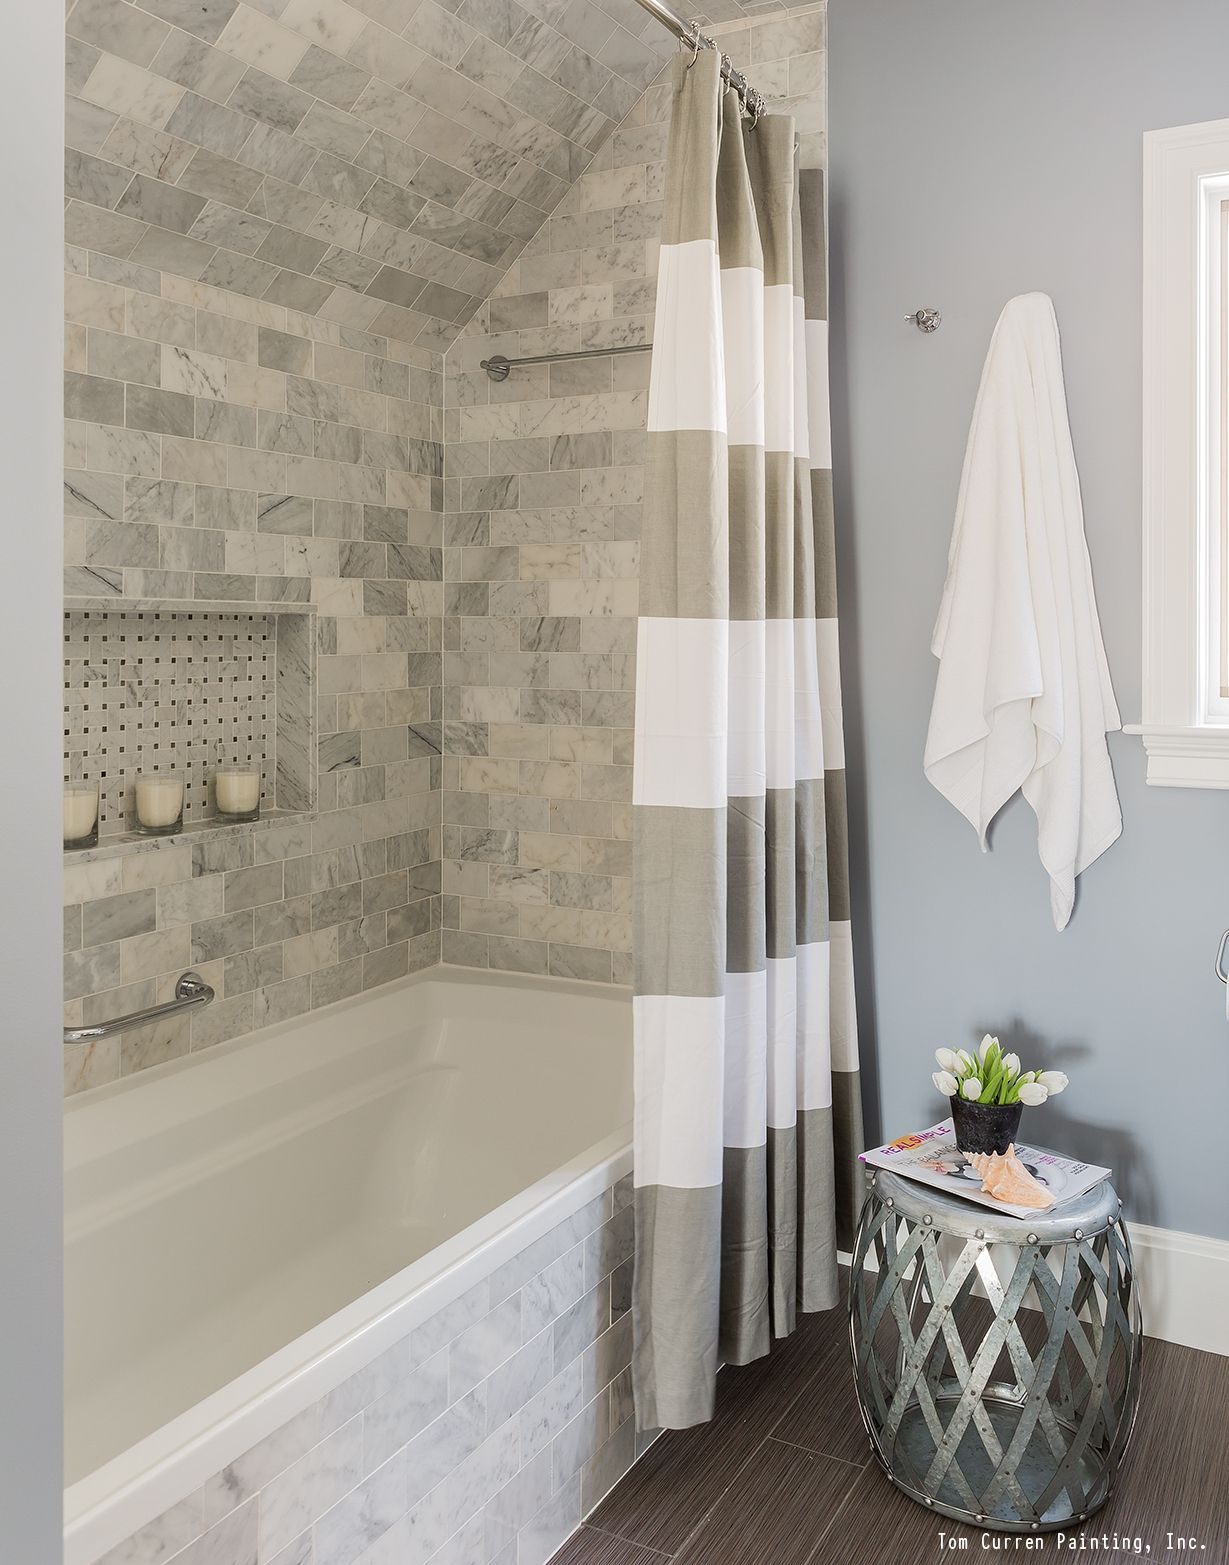 A Guest Bath Gorgeous Bathroom Remodel With A Tile Shower, White Trim And A  Fresh Coat Of Blue Paint. See 10 Of The Most Popular Bathroom Remodeling  Ideas ...